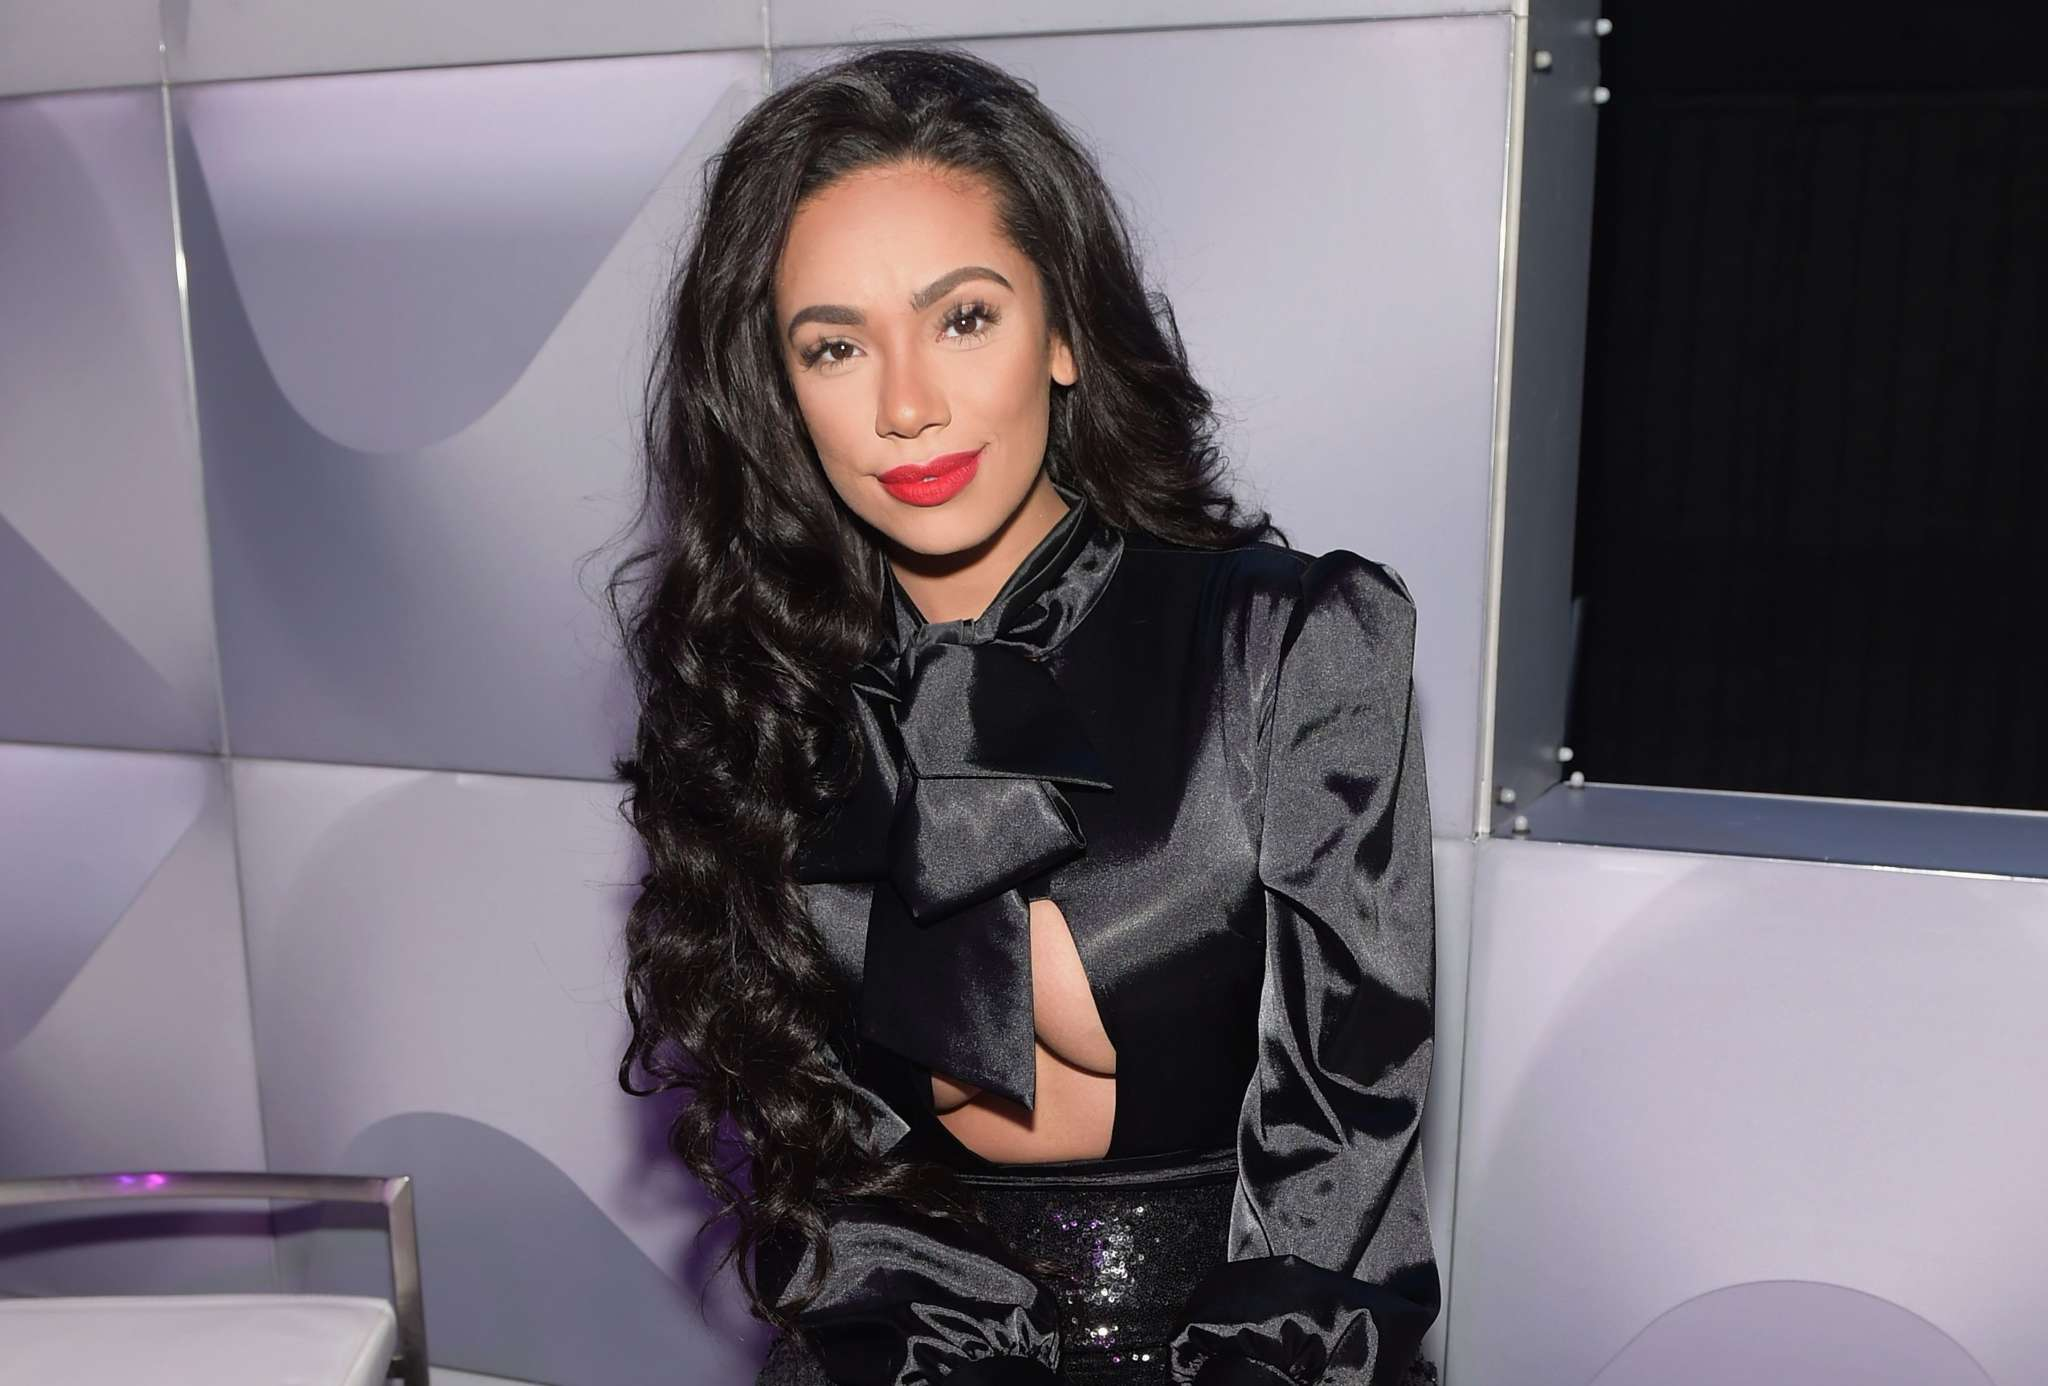 Erica Mena Shares Exciting Footage From The Set Of BET's :Sacrifice' Movie In Which She's Also Featured - See The Videos